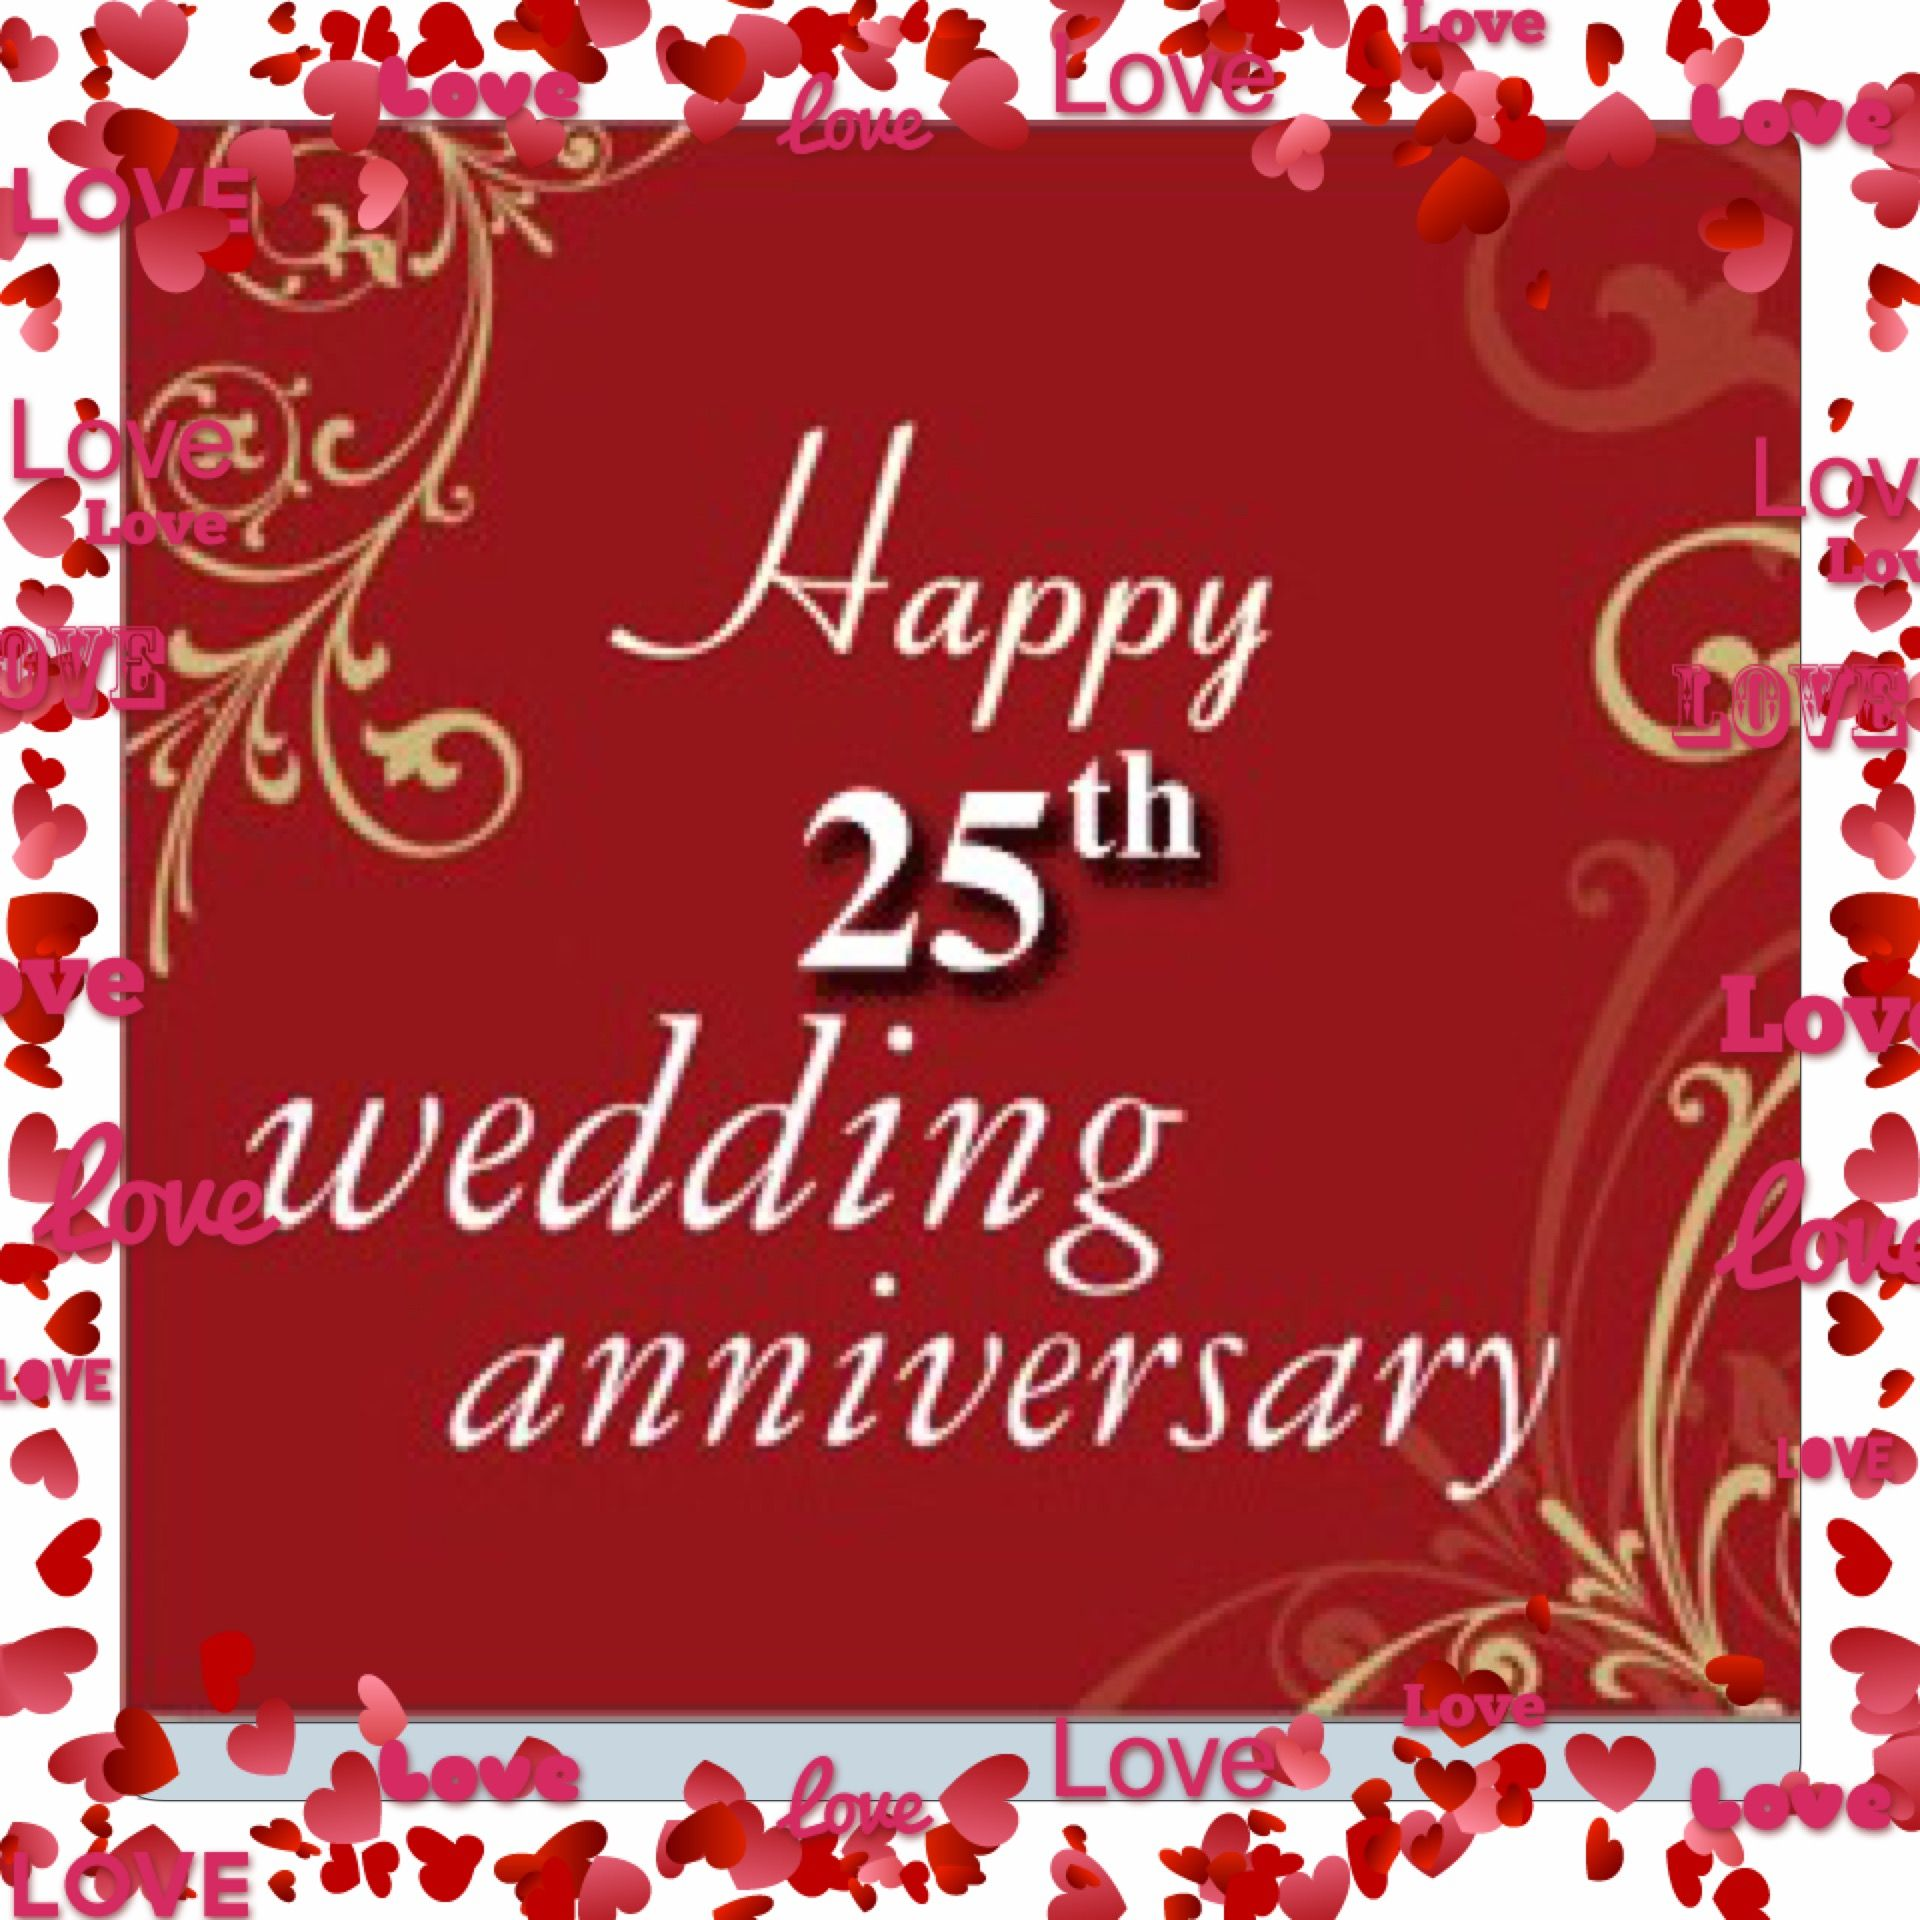 Discover Ideas About Congrats Wishes Wedding Anniversary Wishes For Uncle And Aunty